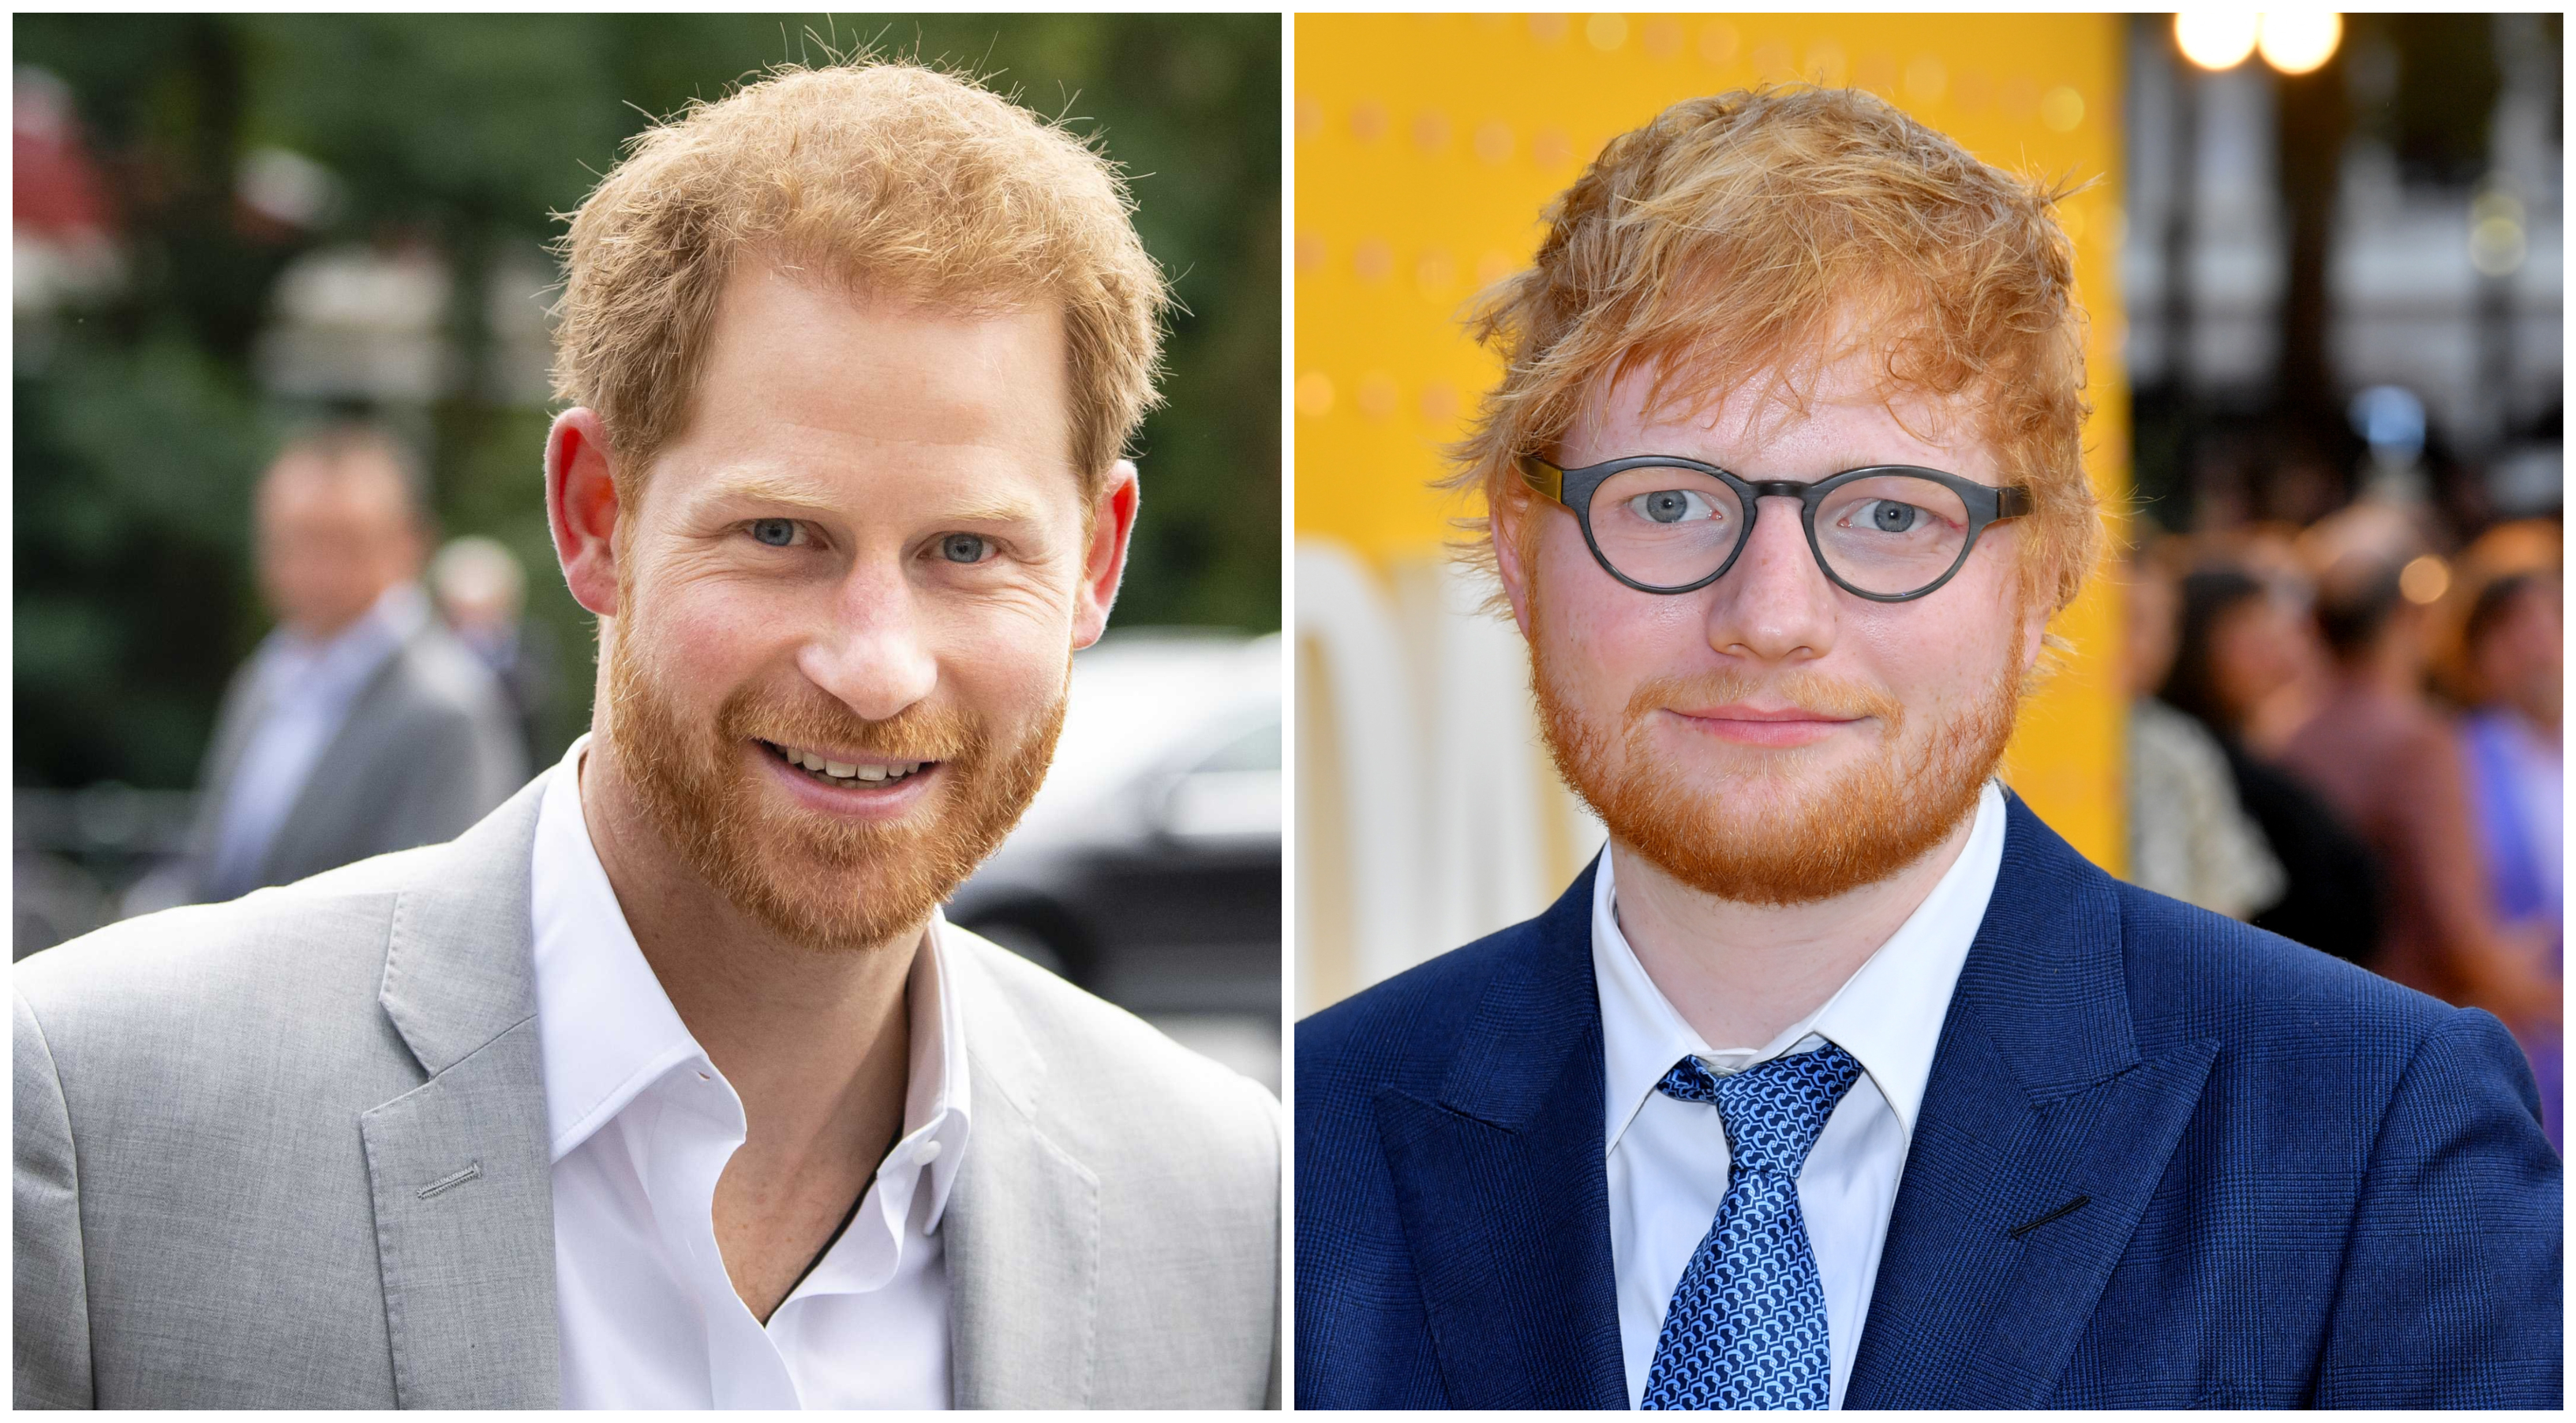 Prince Harry And Ed Sheeran Bond Over Their Ginger Hair Video